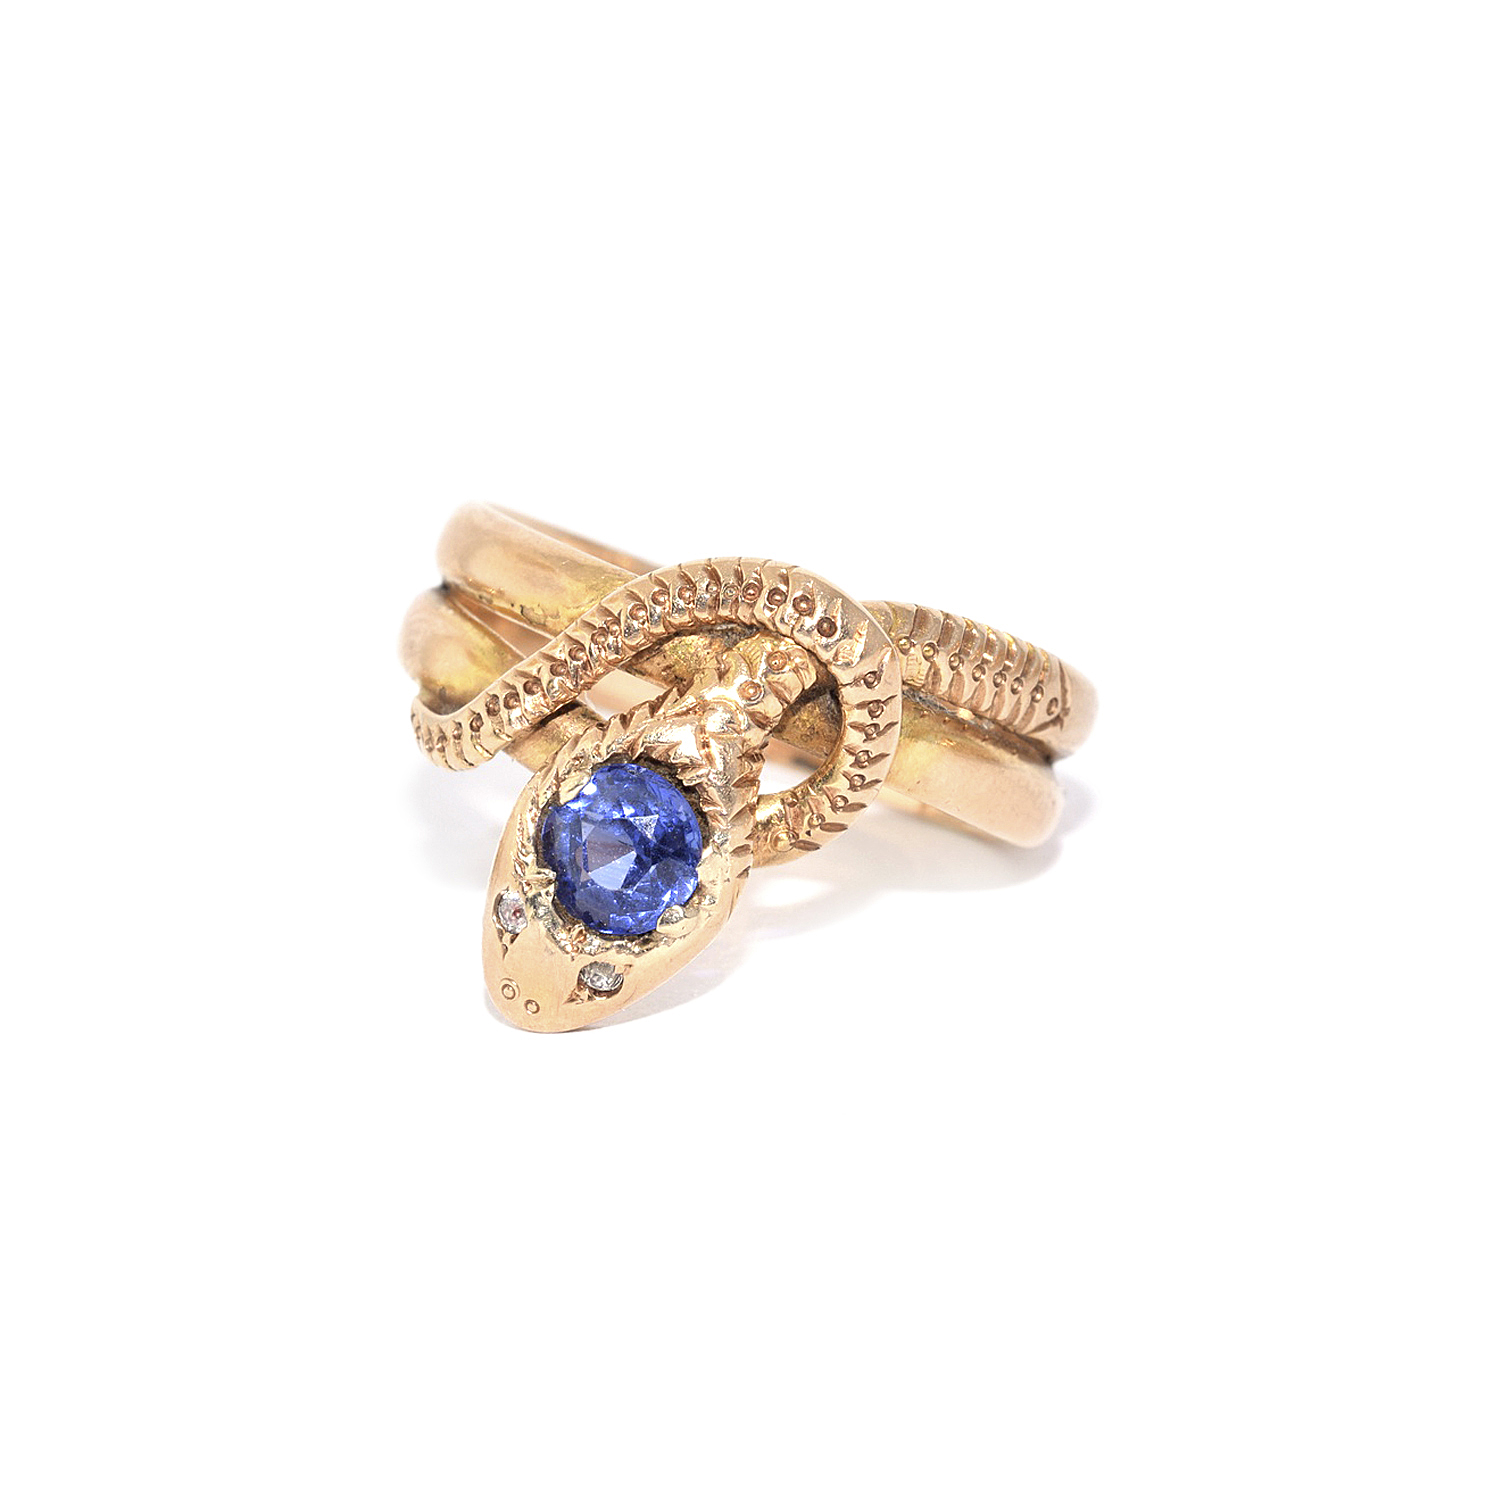 Antique 14K Yellow Gold Sapphire Snake Ring Style R-41576-FL-0-0